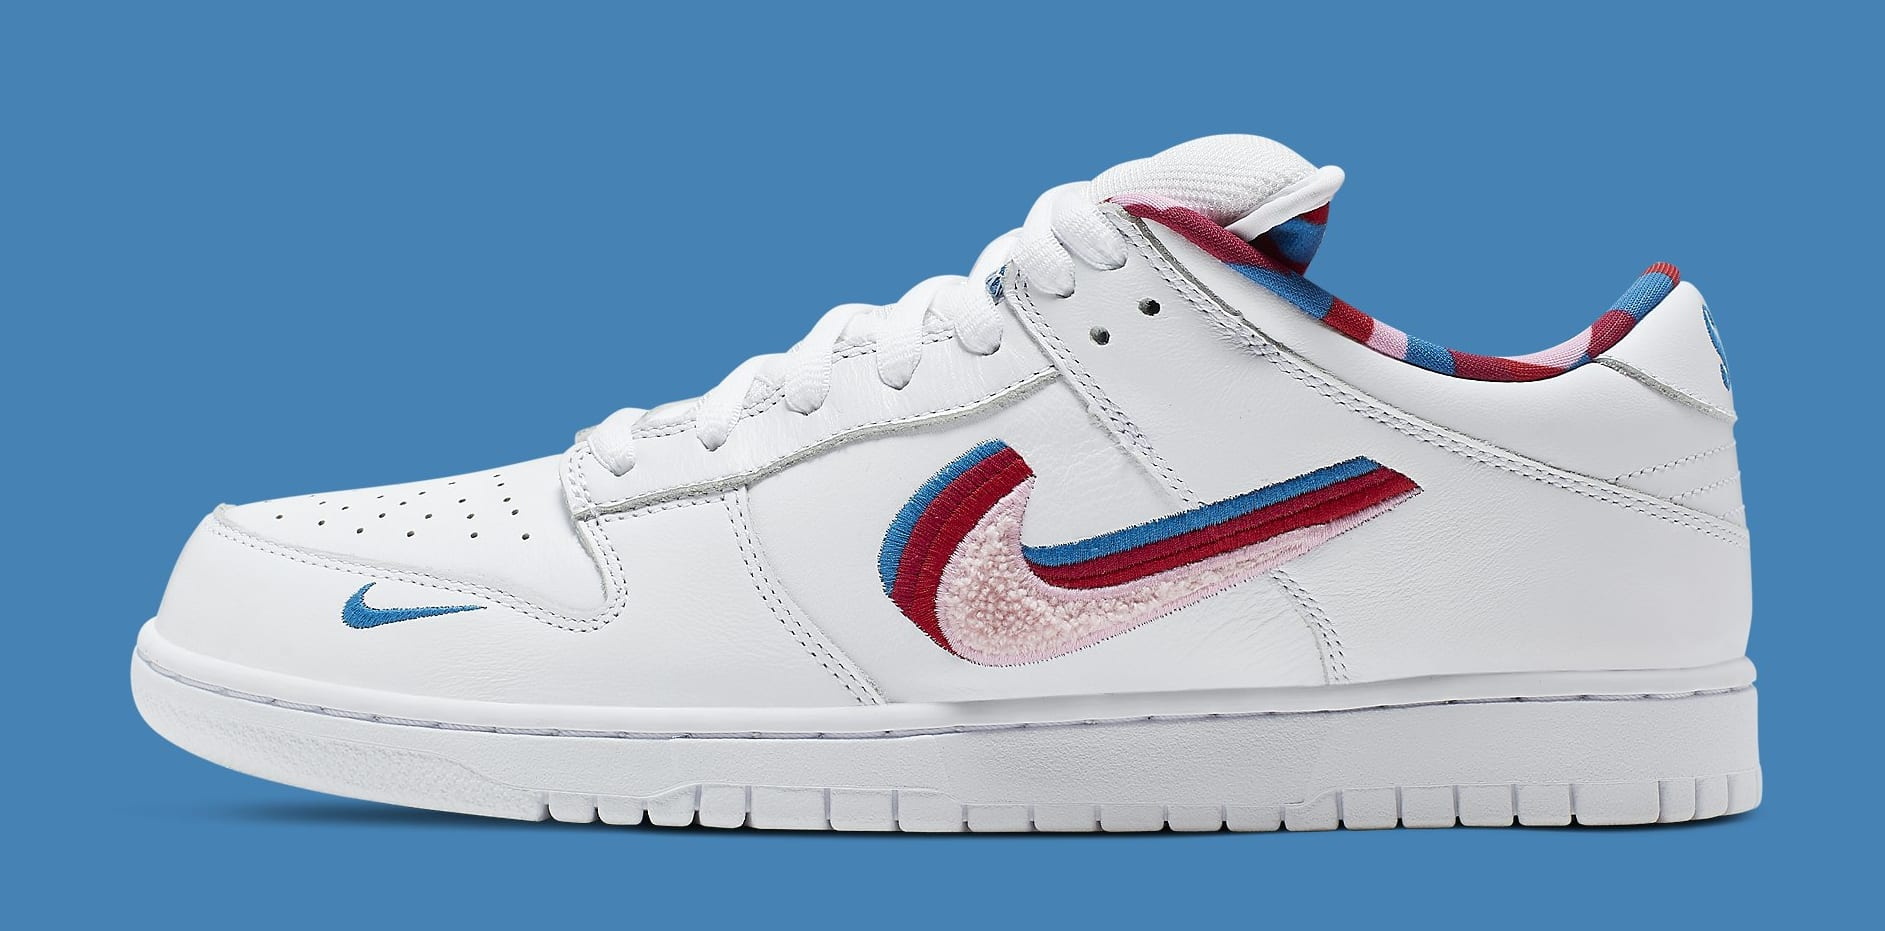 Parra x Nike SB Dunk Low CN4504-100 Lateral